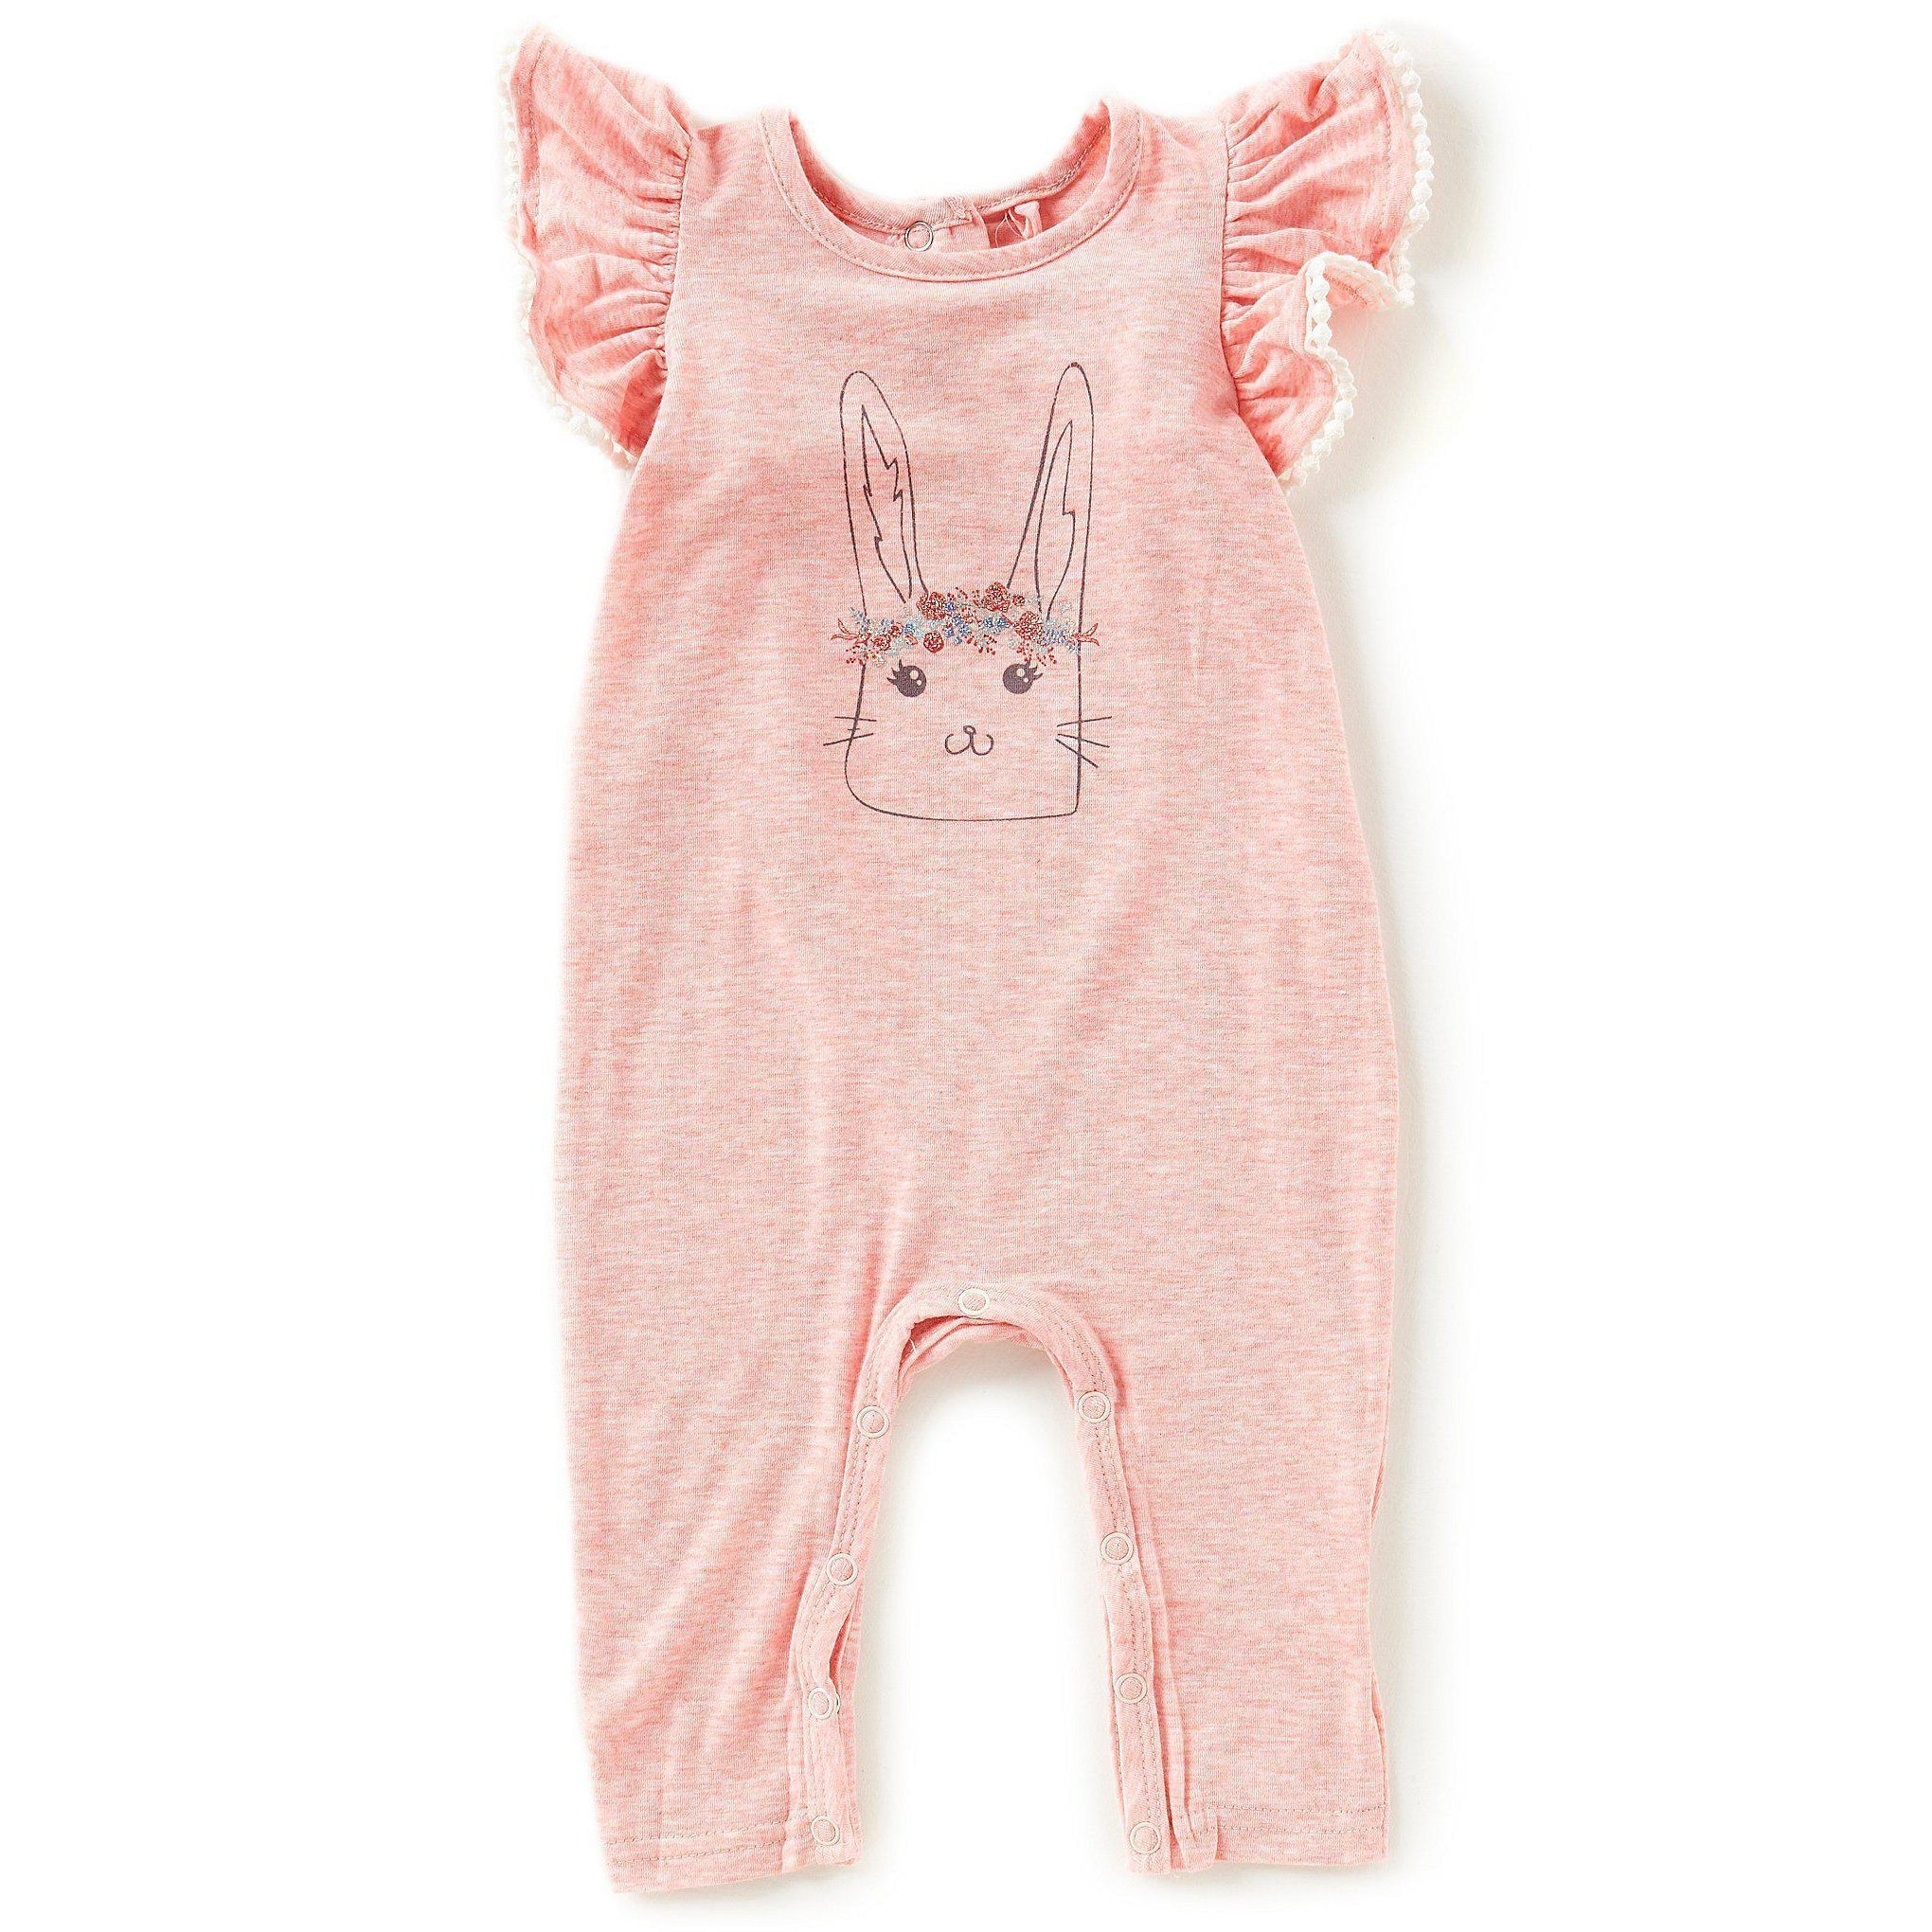 6ec10277275f Heathered Coverall-Baby Girl Apparel - Rompers-Jessica Simpson-0-3M-